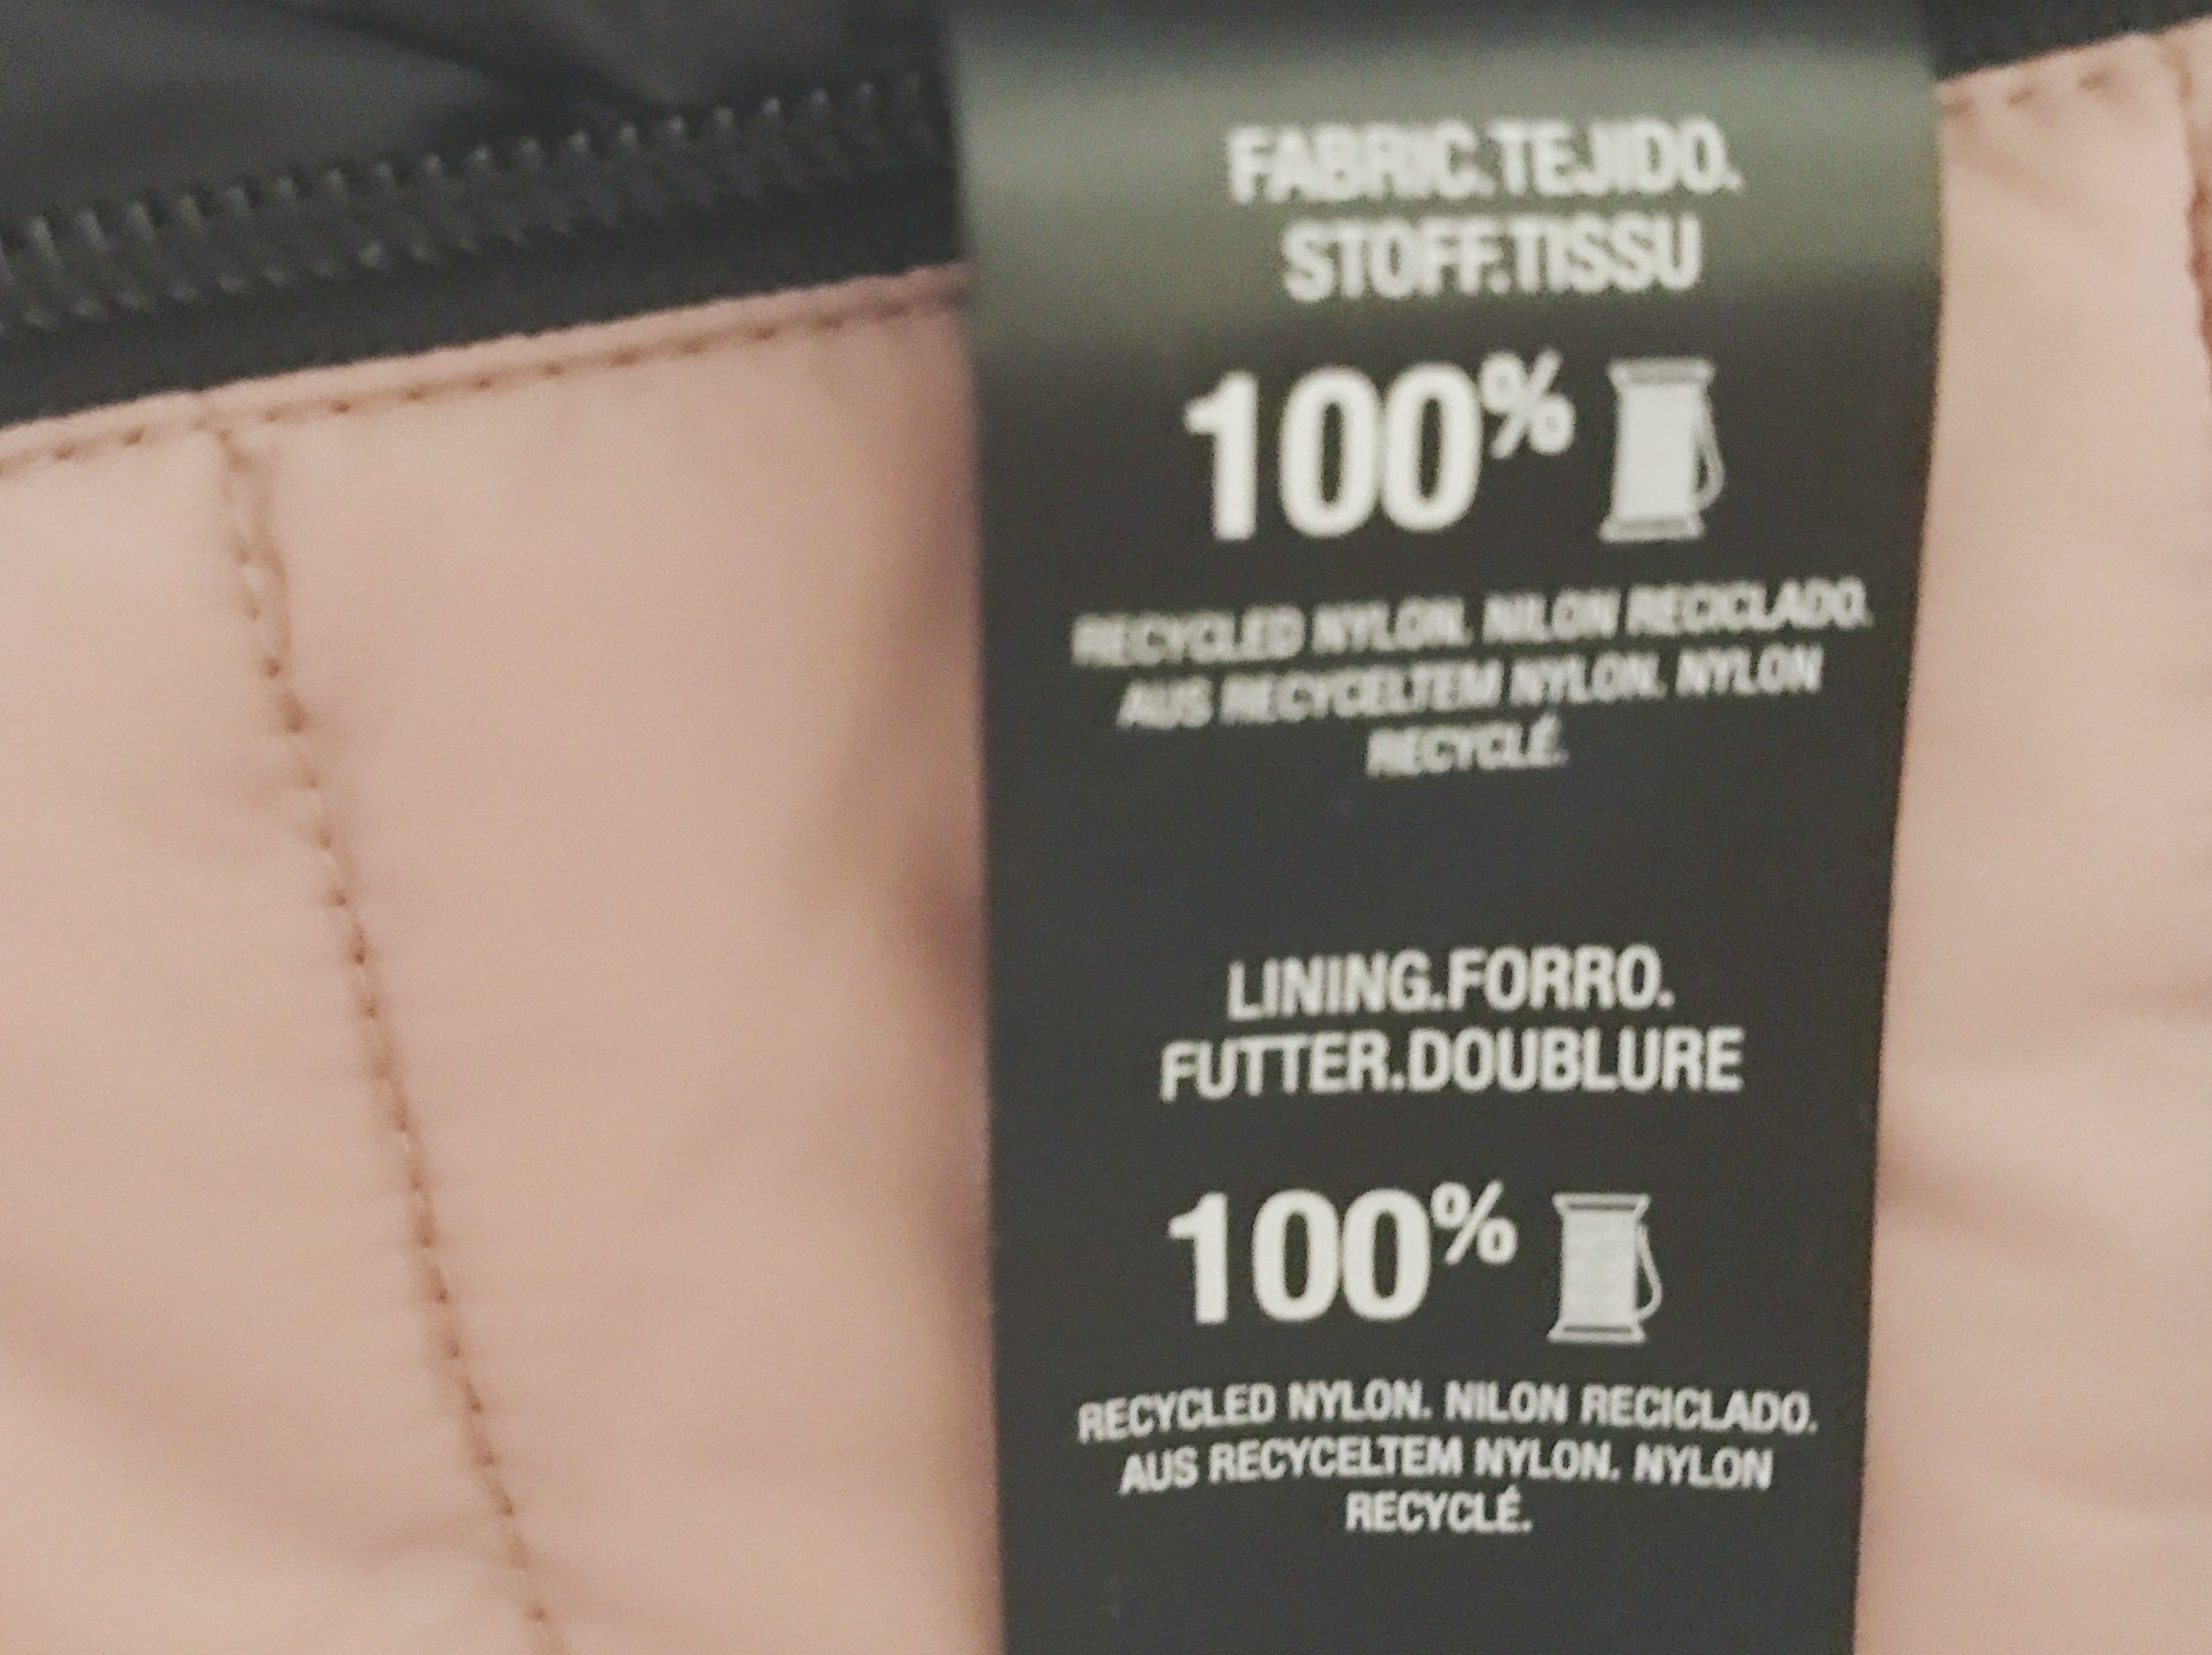 Recycled synthetic fibers